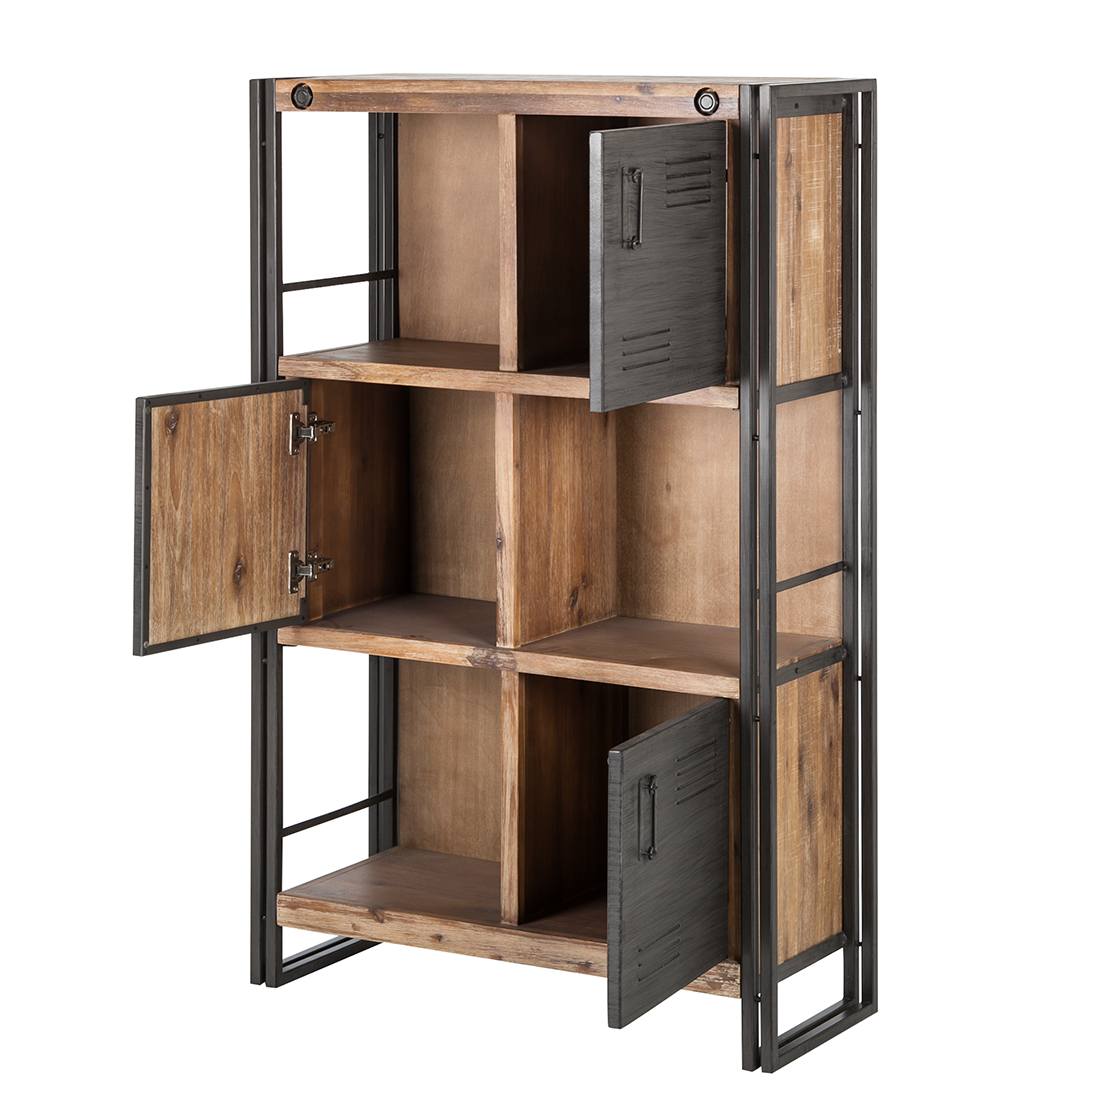 kommode modern holz neuesten design kollektionen f r die familien. Black Bedroom Furniture Sets. Home Design Ideas